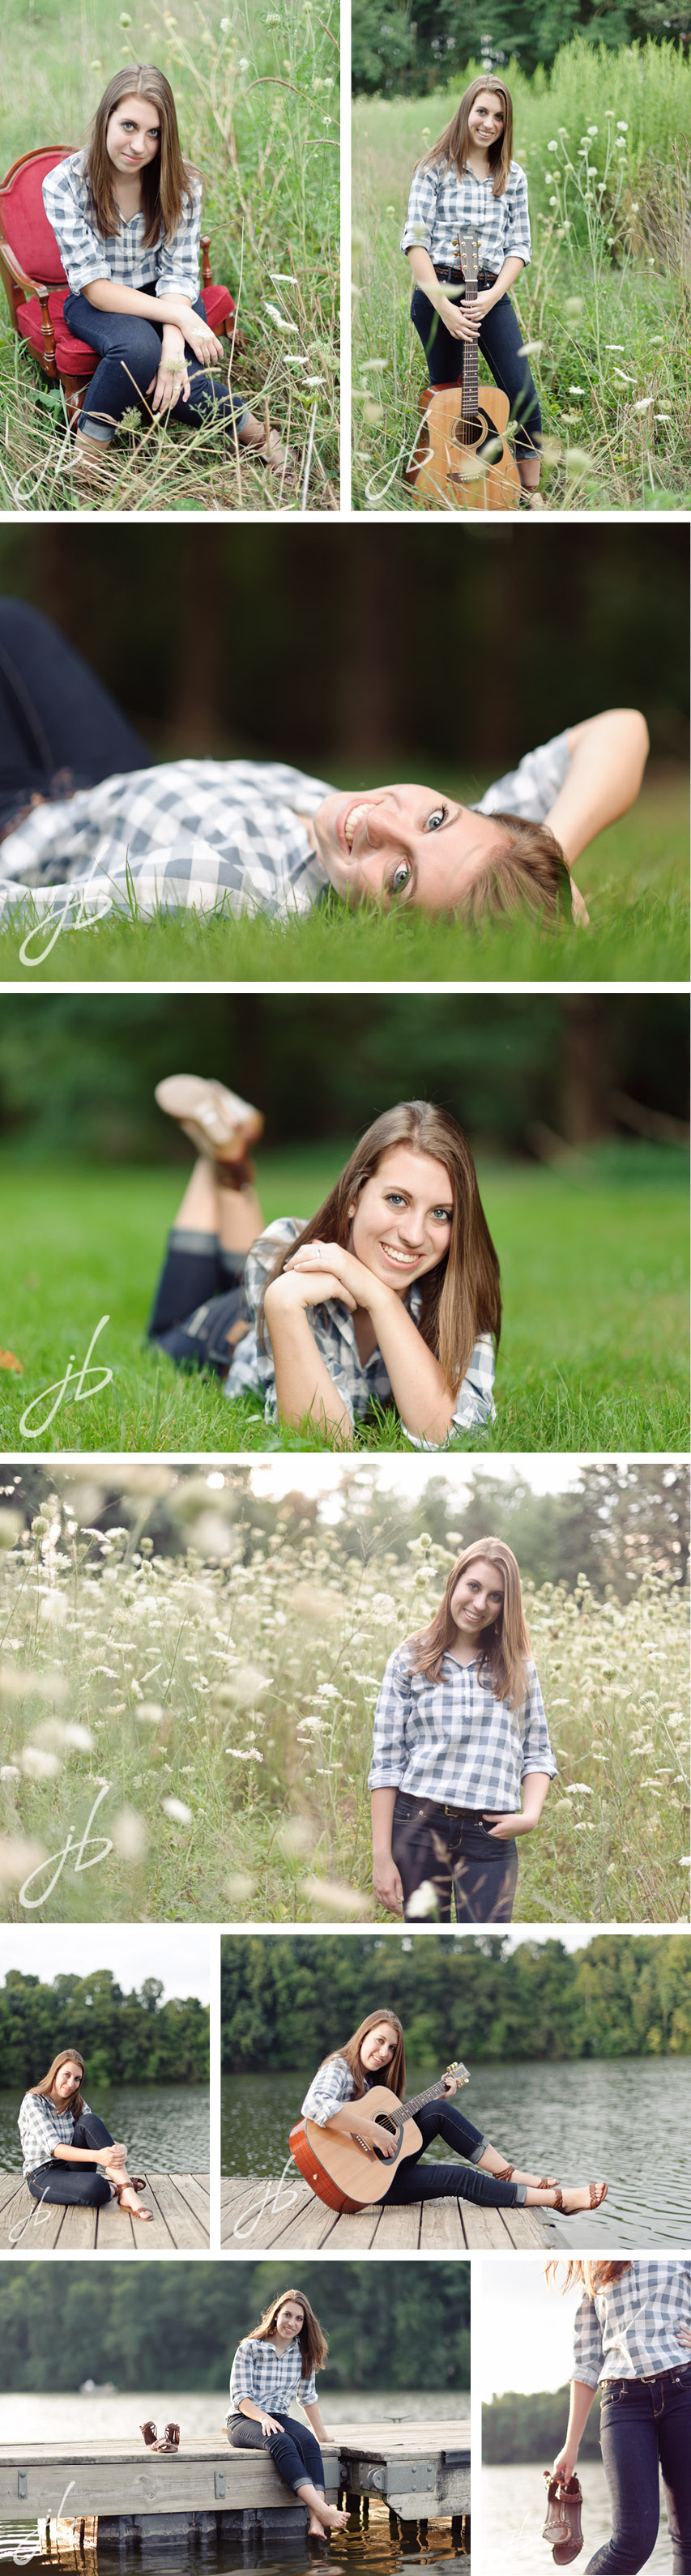 Lancaster PA Senior portrait Photography by Jeremy Bischoff Photography 004